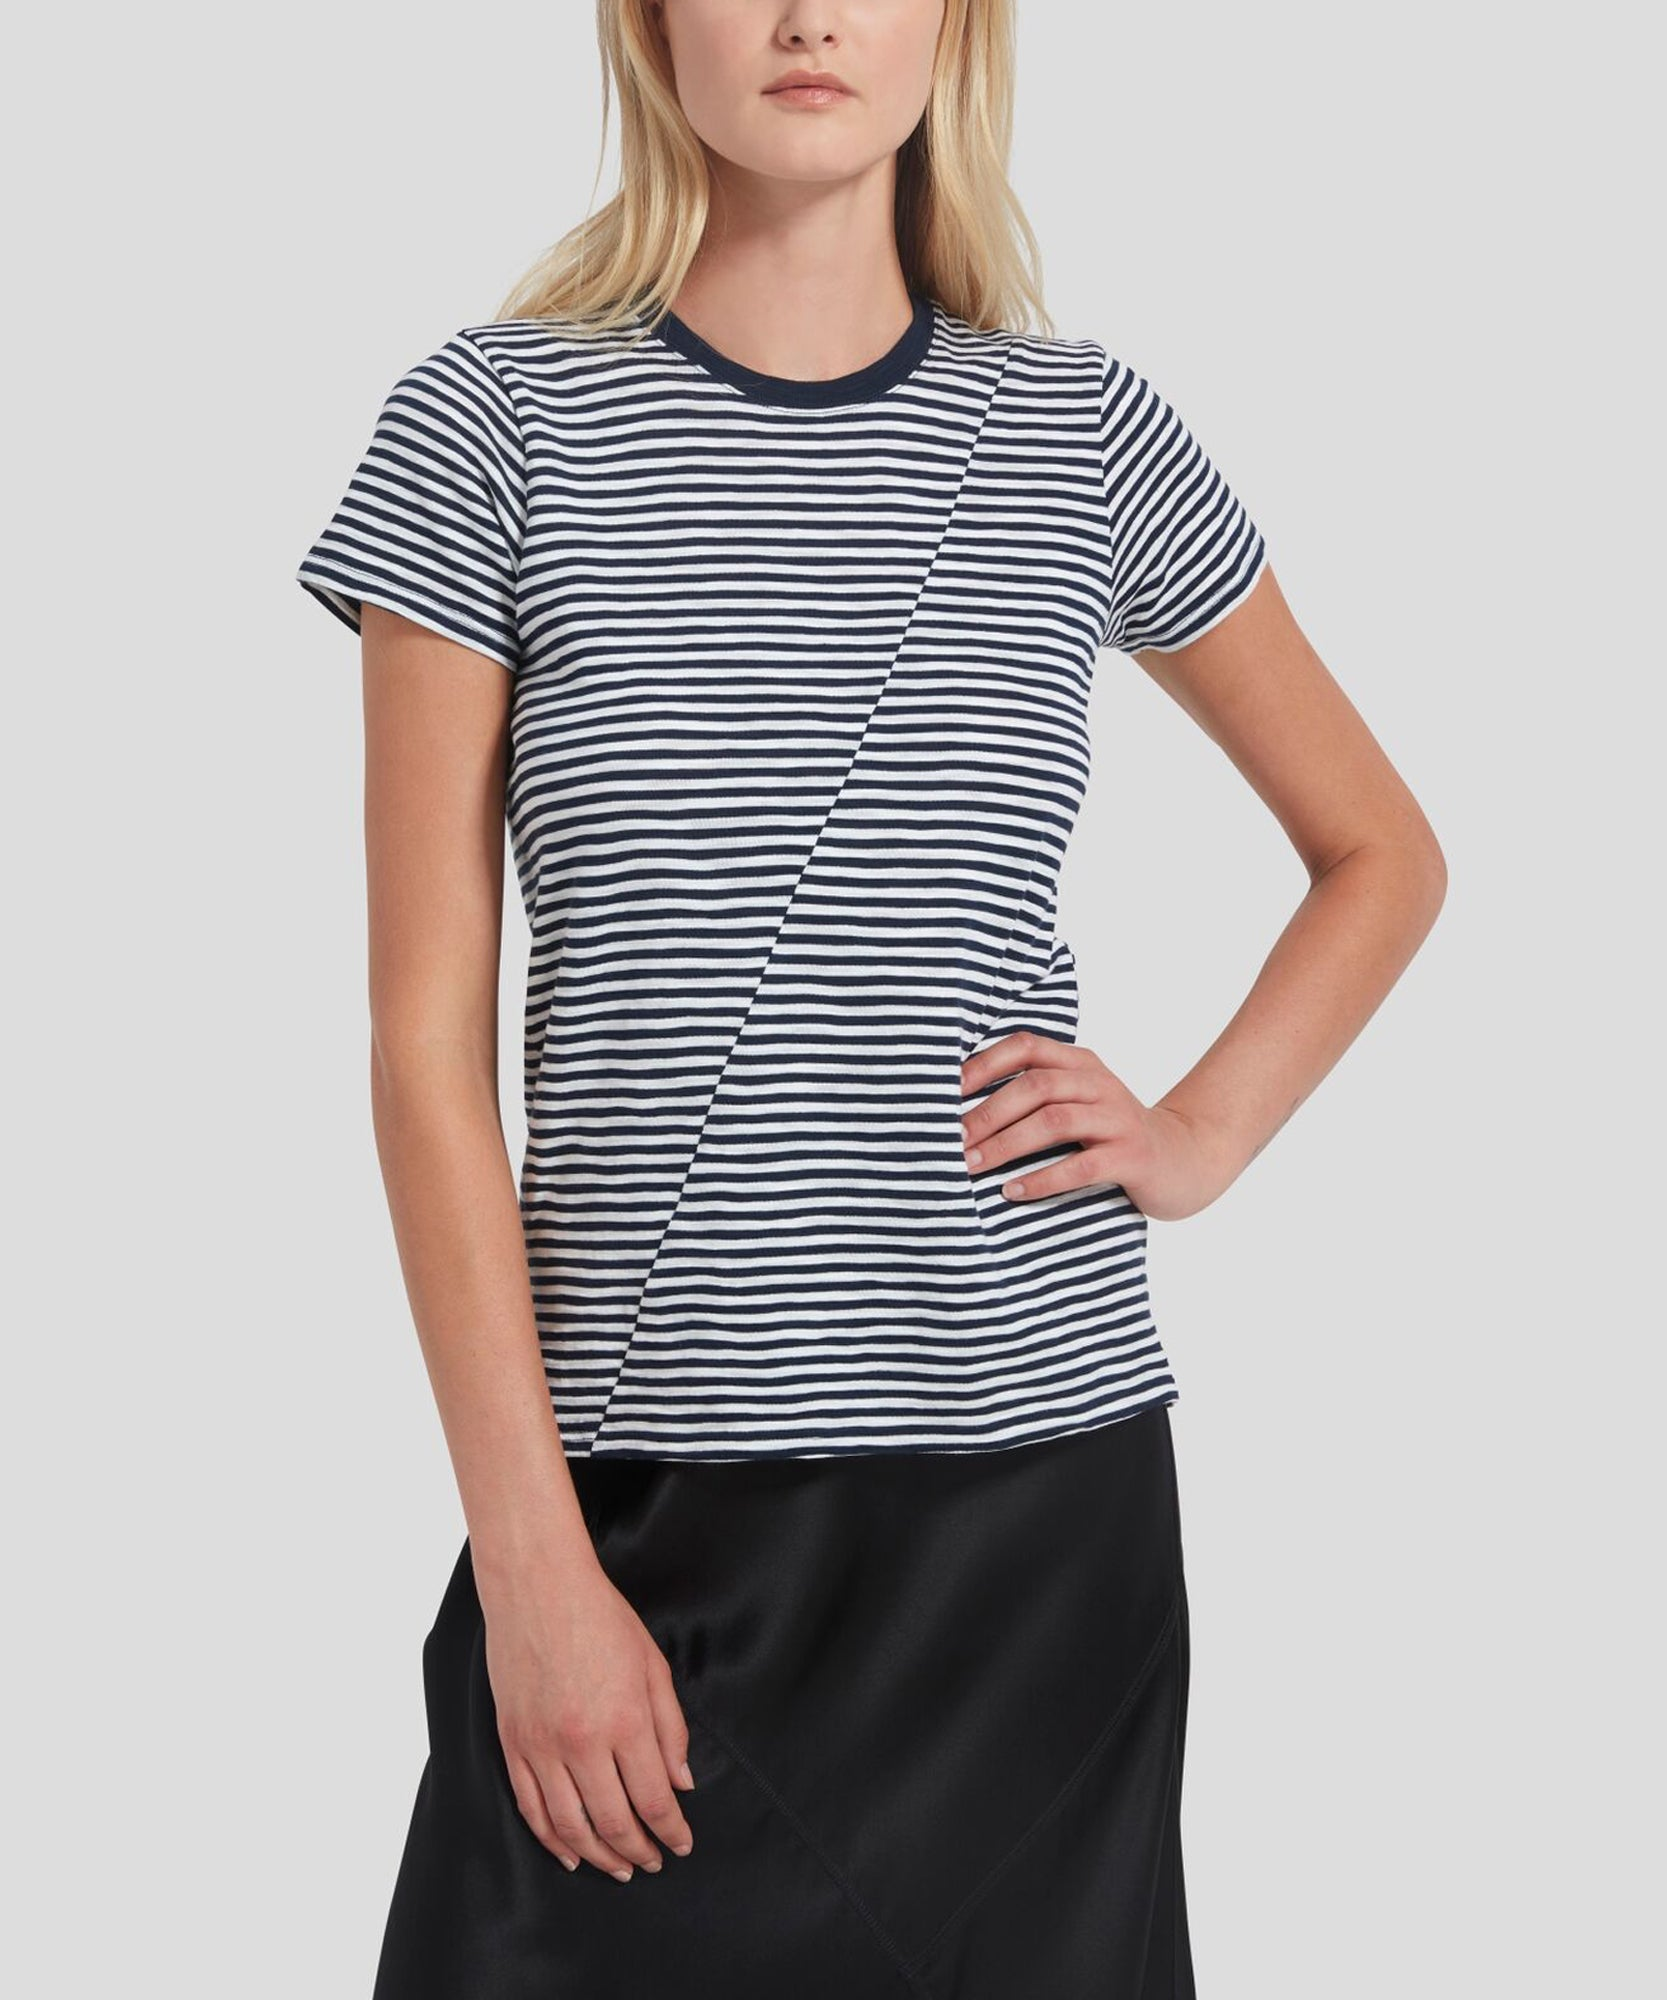 ATM Striped Jersey Short Sleeve Tee